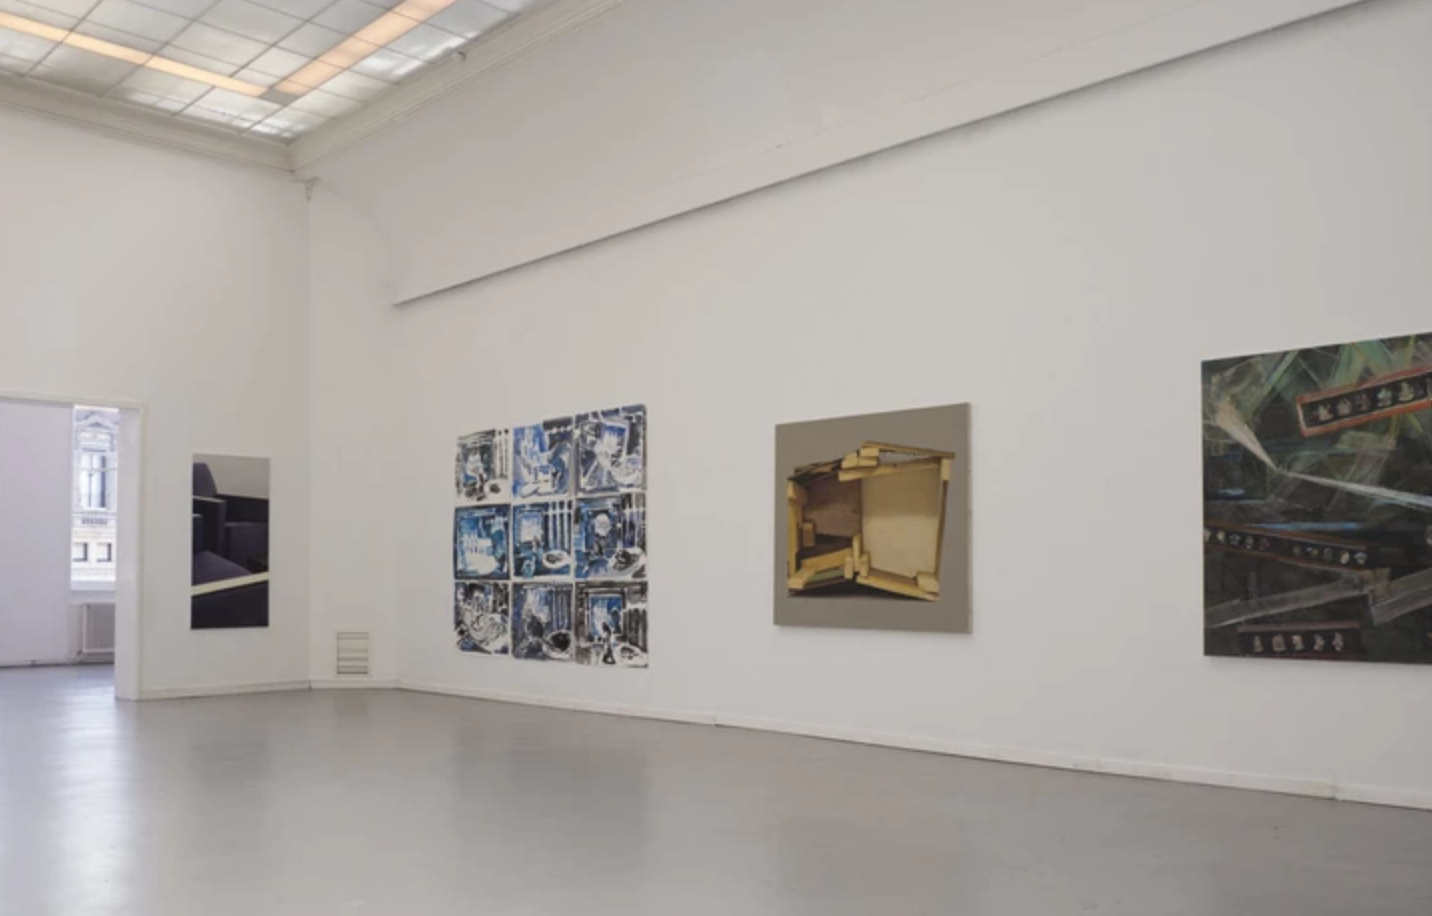 Installation view: Arnout Killian, Frenk Meeuwsen, Andre Roiter, Roger Cremers